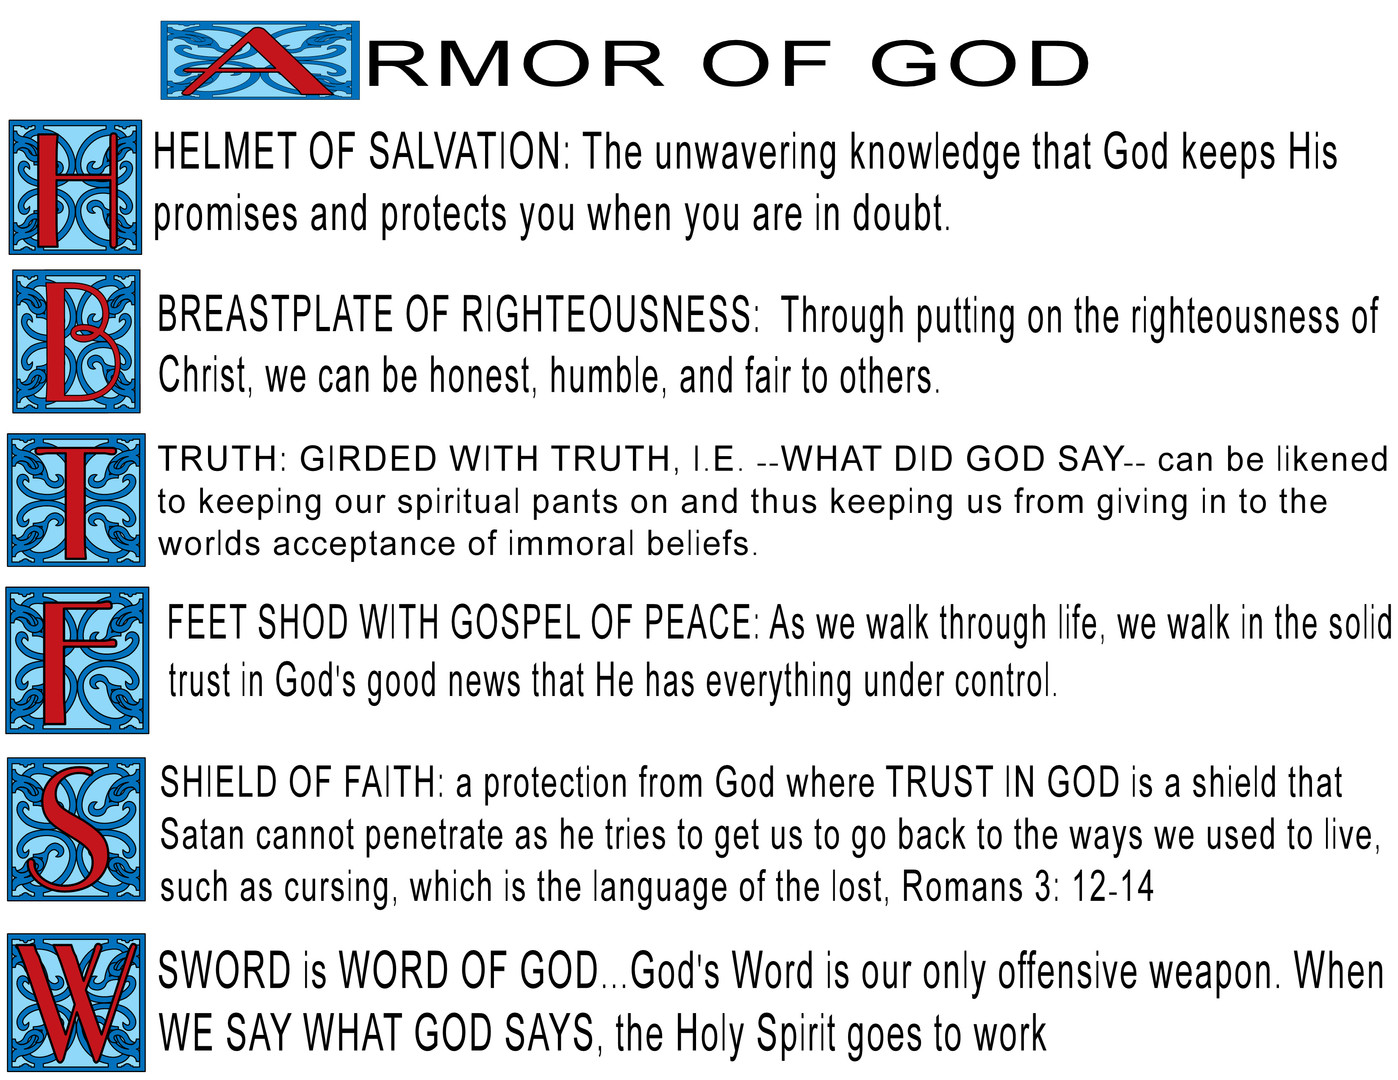 Armor of God.jpg